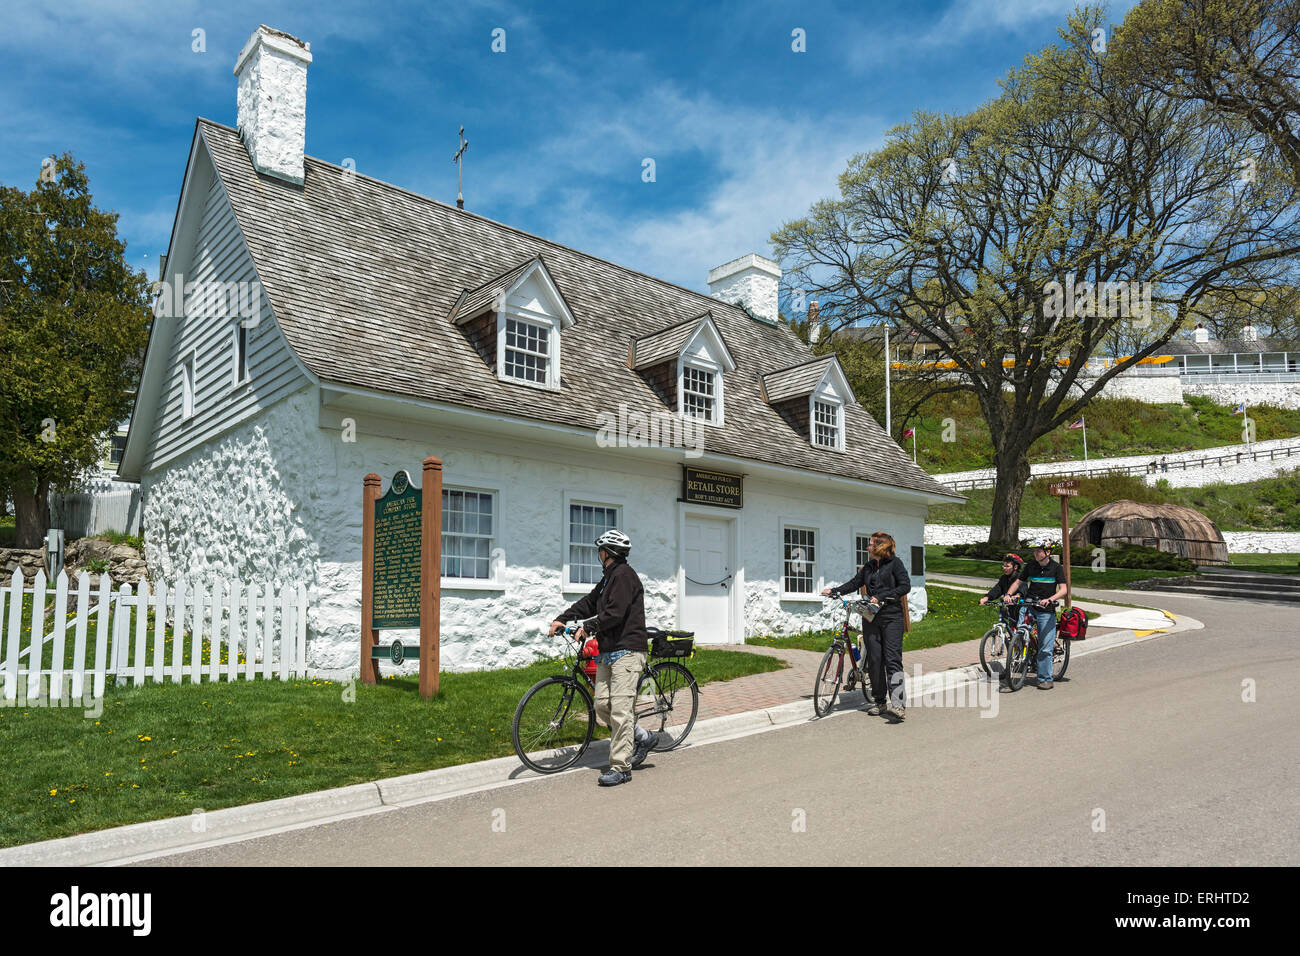 Michigan, Mackinac Island, Market Street, American Fur Co. Store & Dr. Beaumont Museum, family bicyclists, bicycle - Stock Image